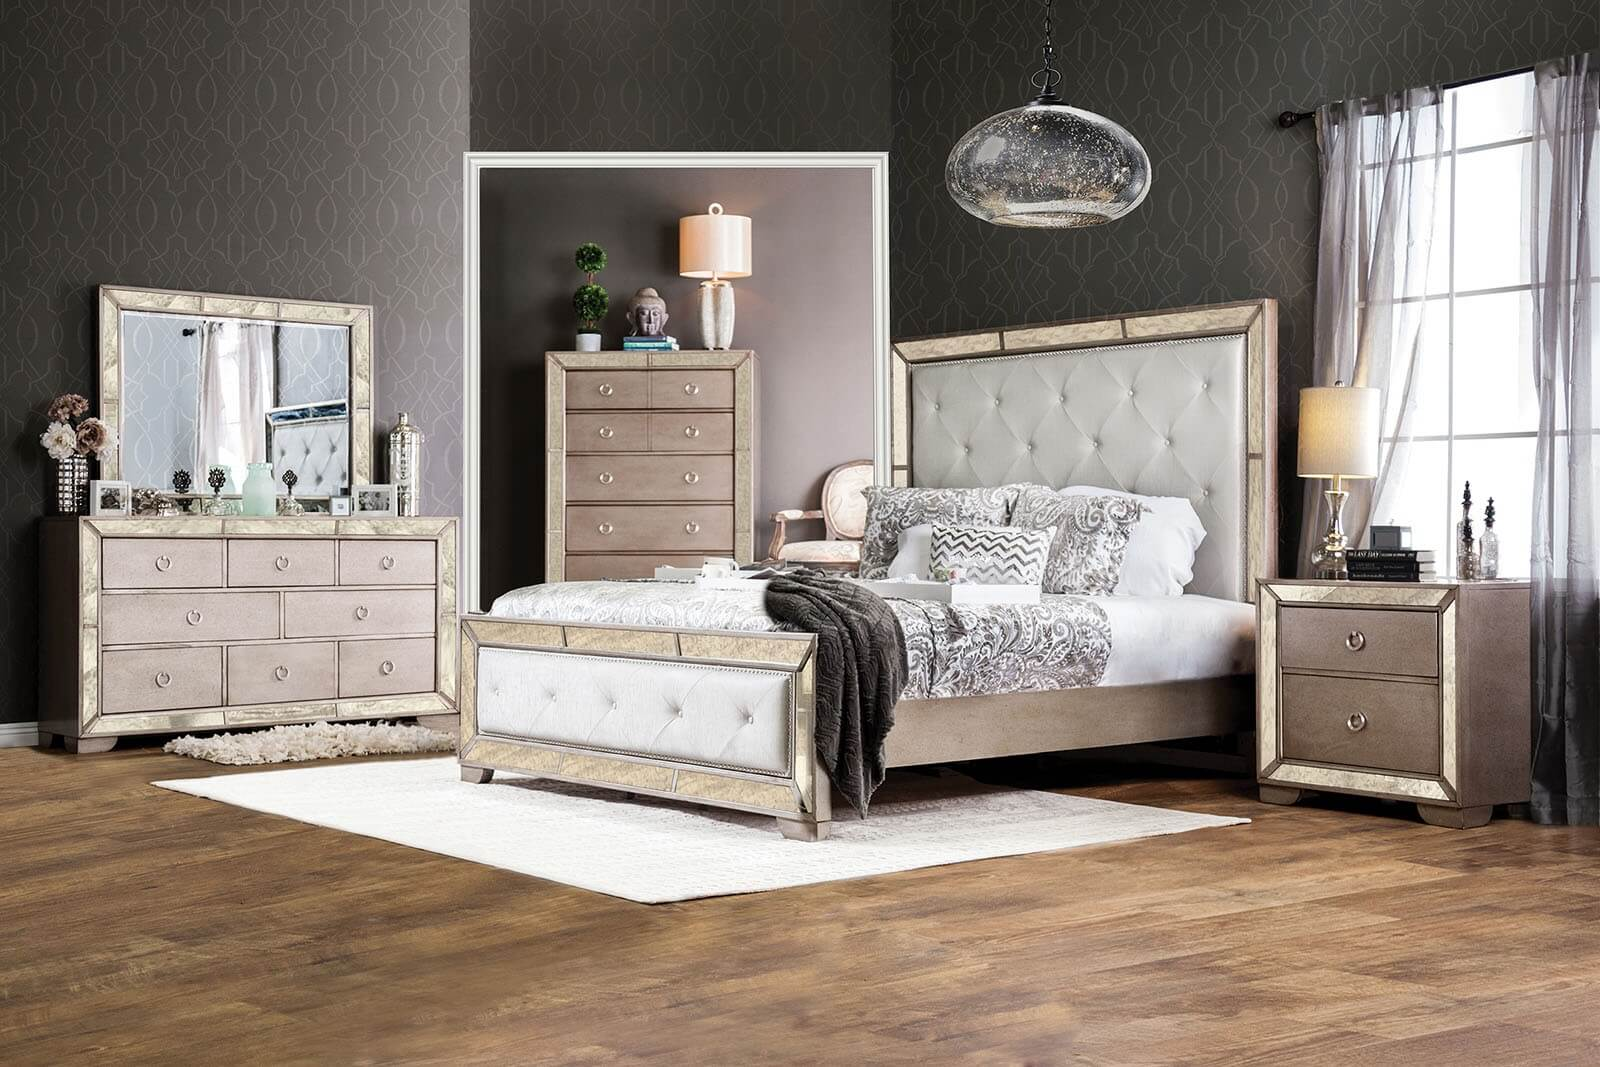 Bedroom sets for sale in usa 28 images constellation 8 for Bedroom furniture usa